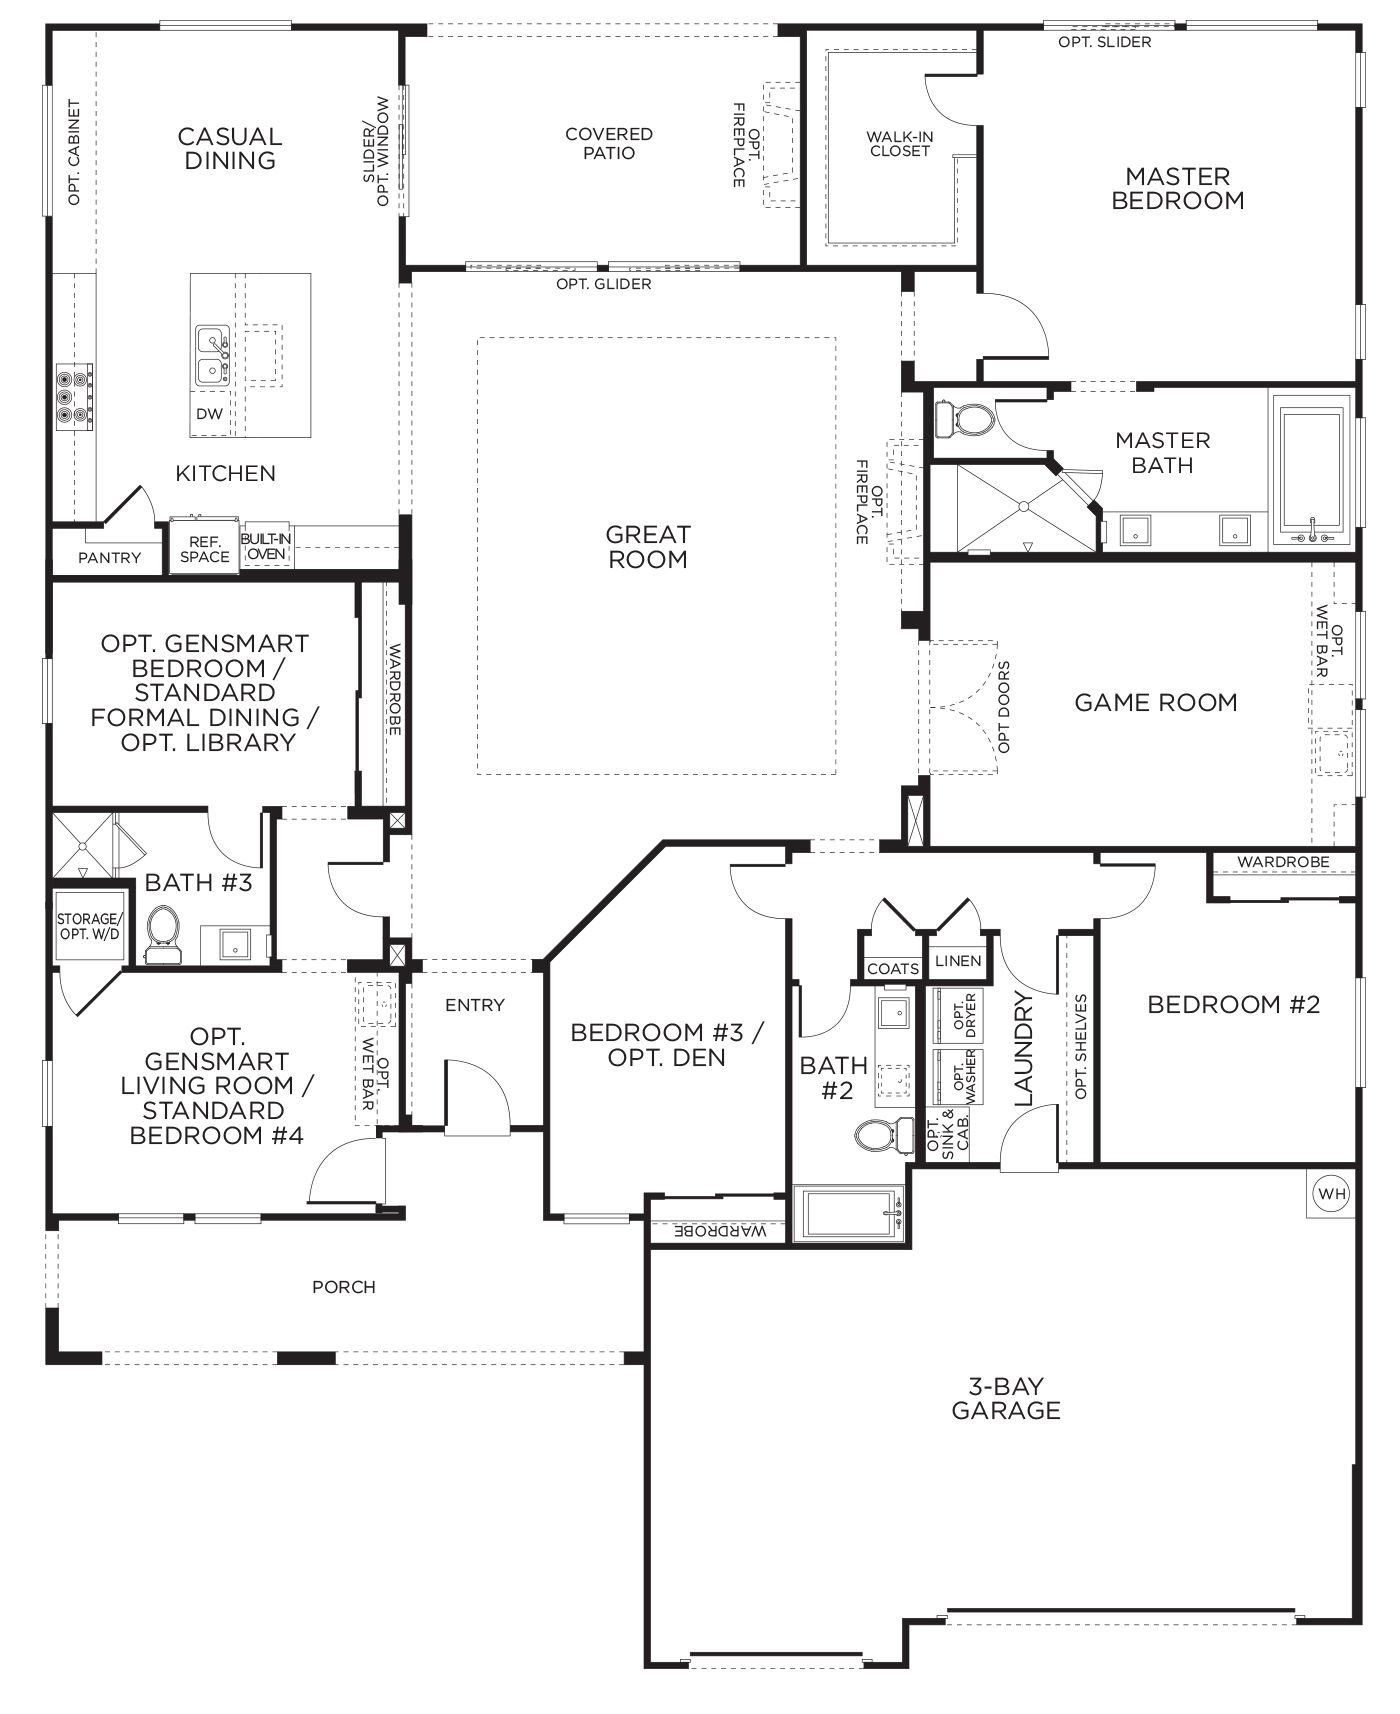 Durango Trail Model Plan 2a Floorplan Singlestory Lasvegas